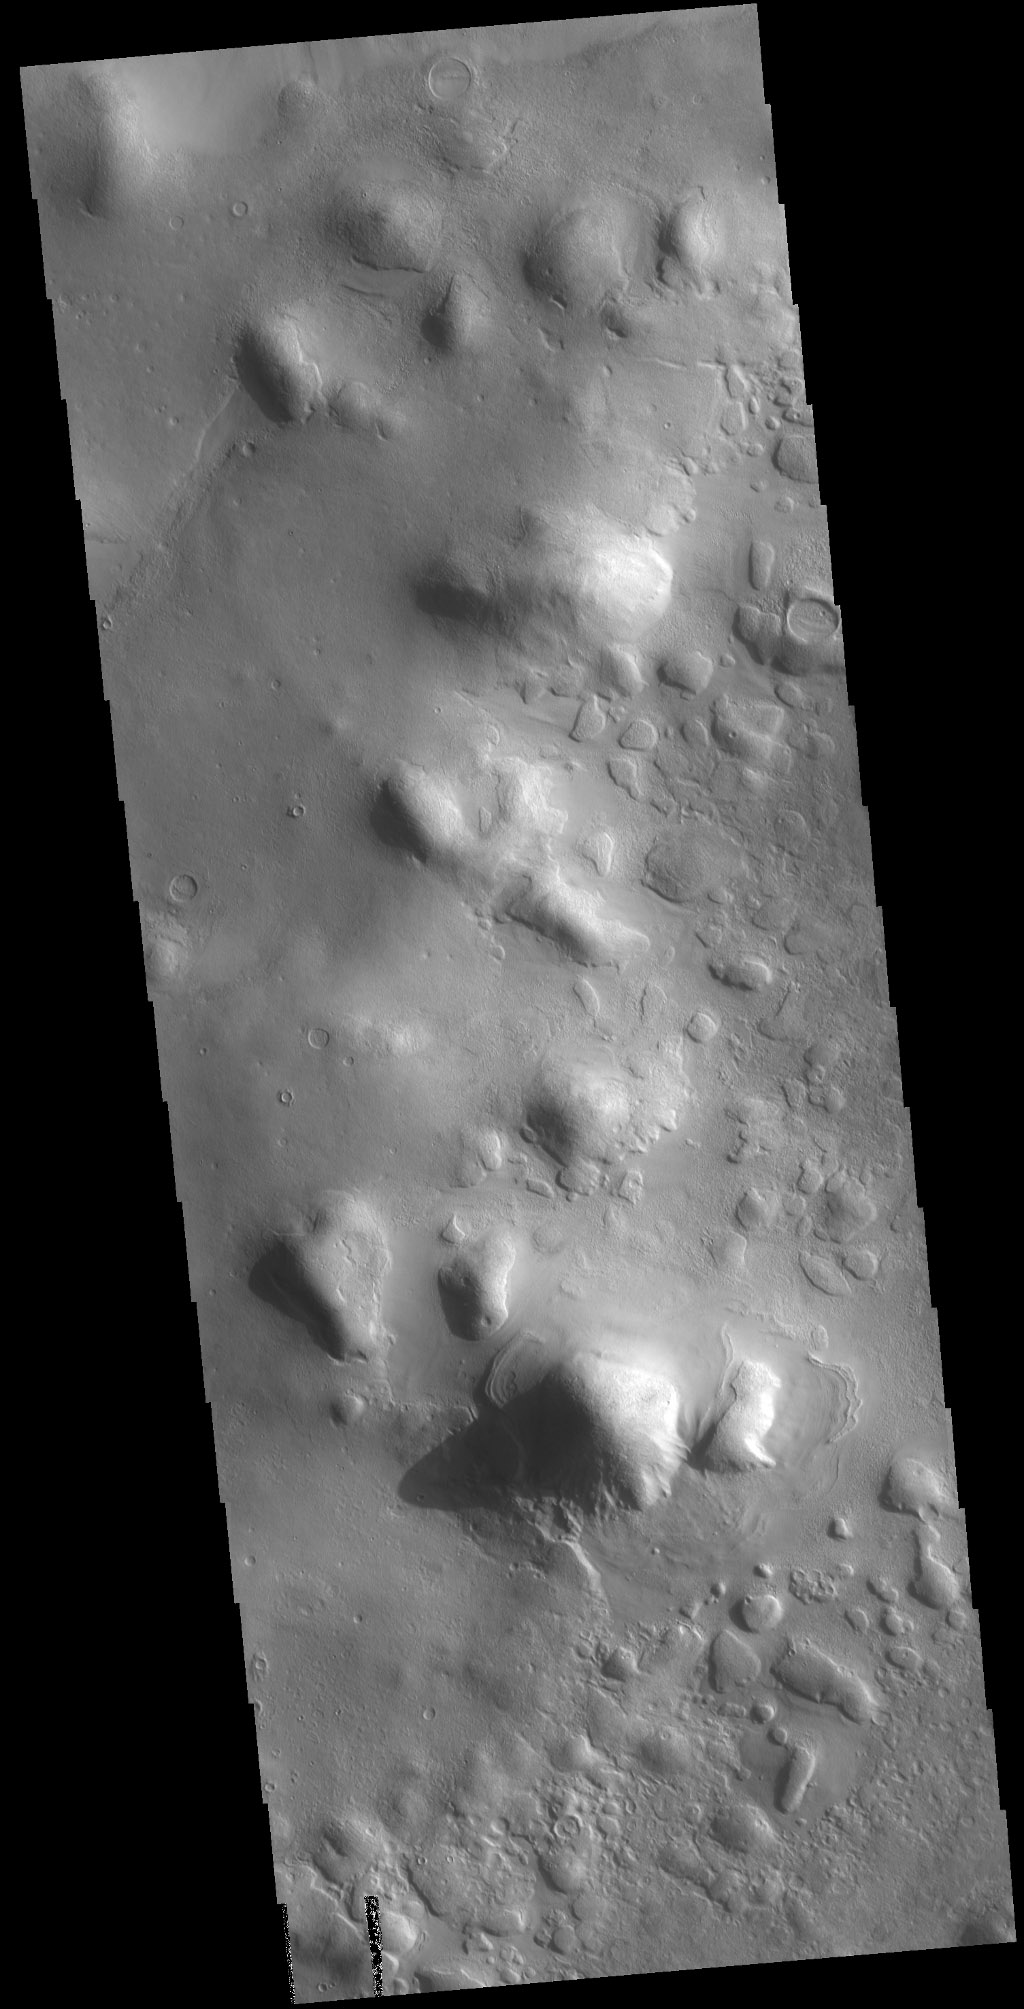 The hills in this image captured by NASA's 2001 Mars Odyssey spacecraft are part of Protonilus Mensae, located on the northern margin of Terra Sabaea.